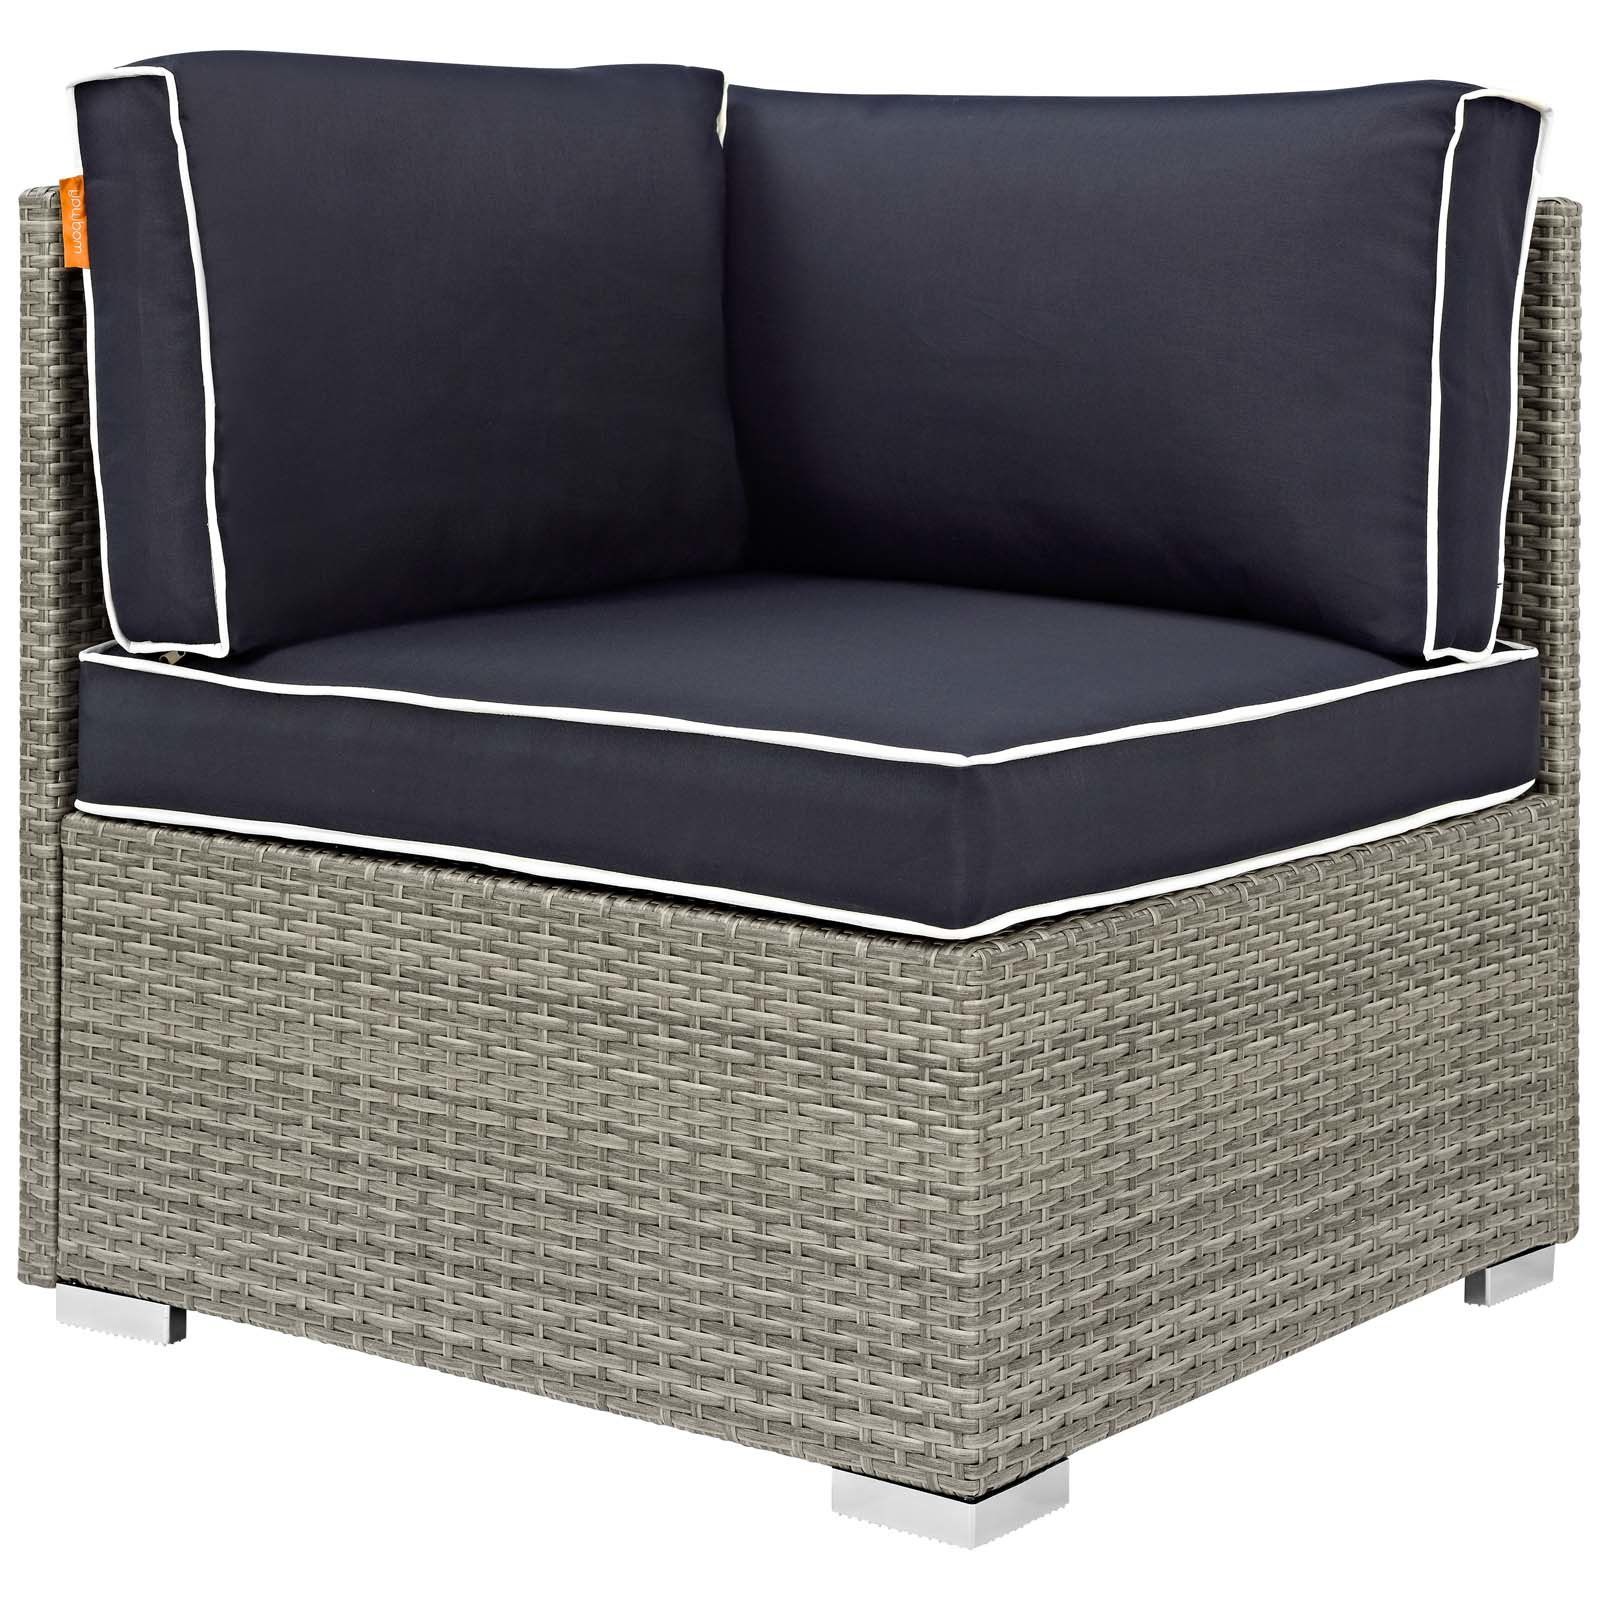 Preferred Heinrich Outdoor Corner Patio Chair With Cushion Within Hursey Patio Sofas (View 15 of 20)